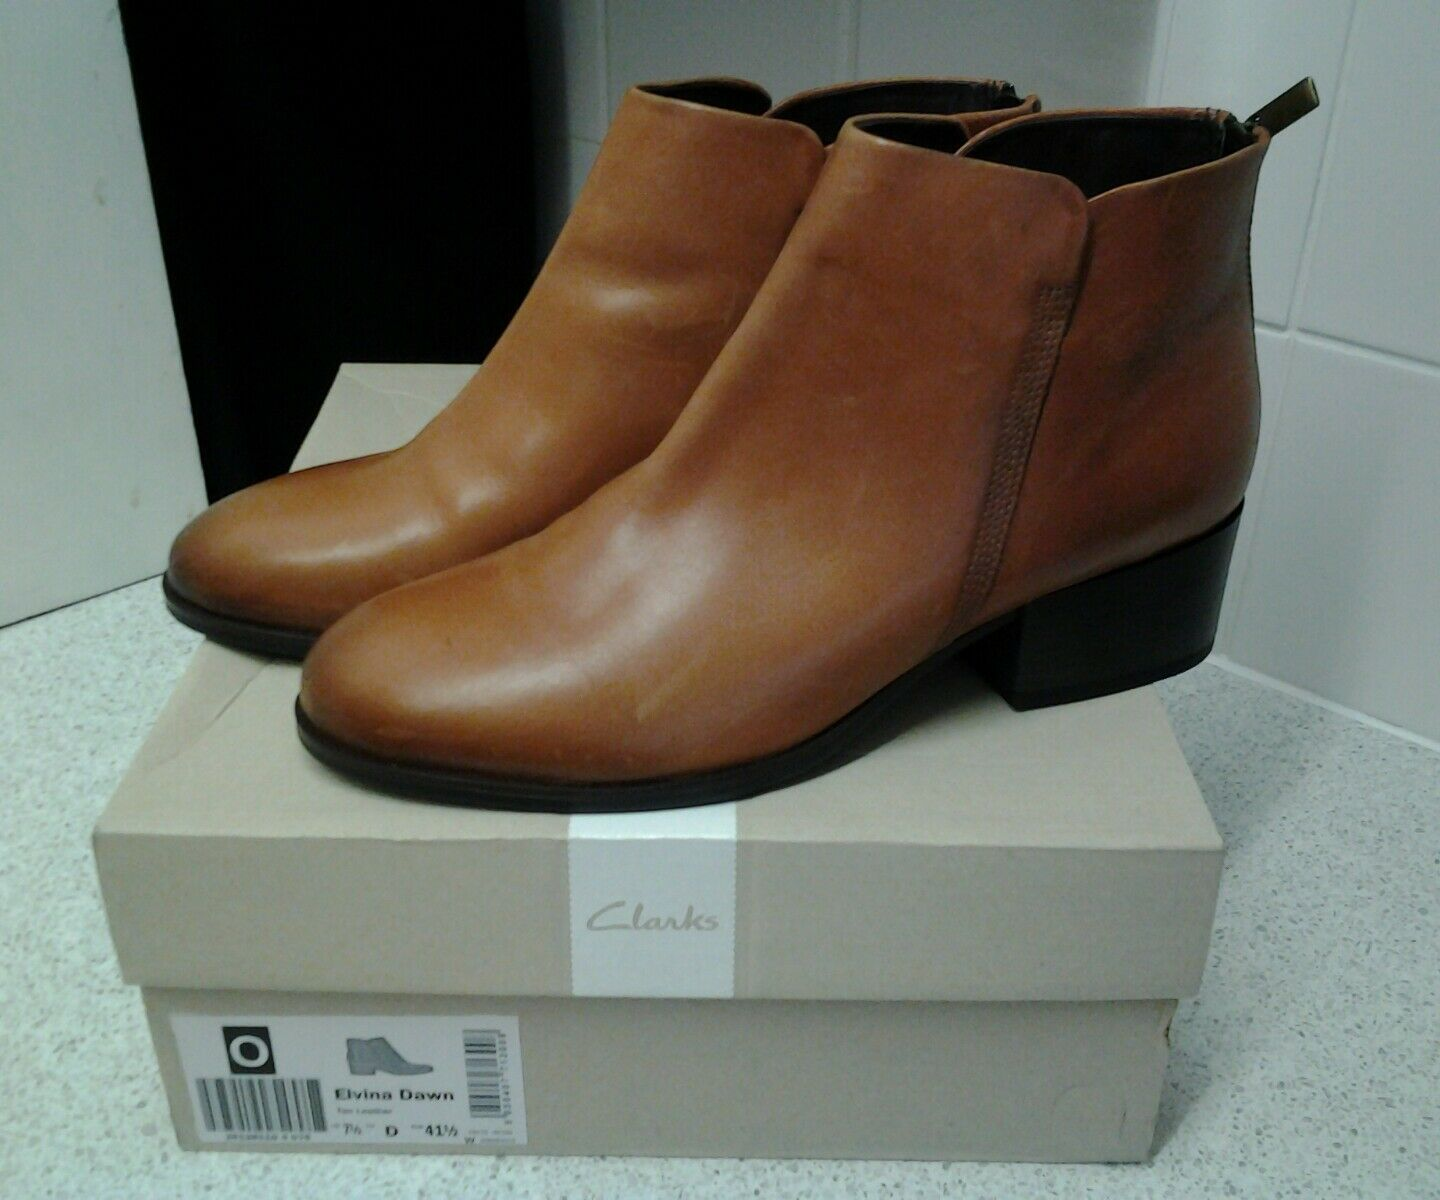 CLARKS LADIES ZIPPED ANCLE BOOT 7.5 ELVINA DAWN TAN UK 7.5 BOOT EUR 41.5 NEW WITH BOX . 939713